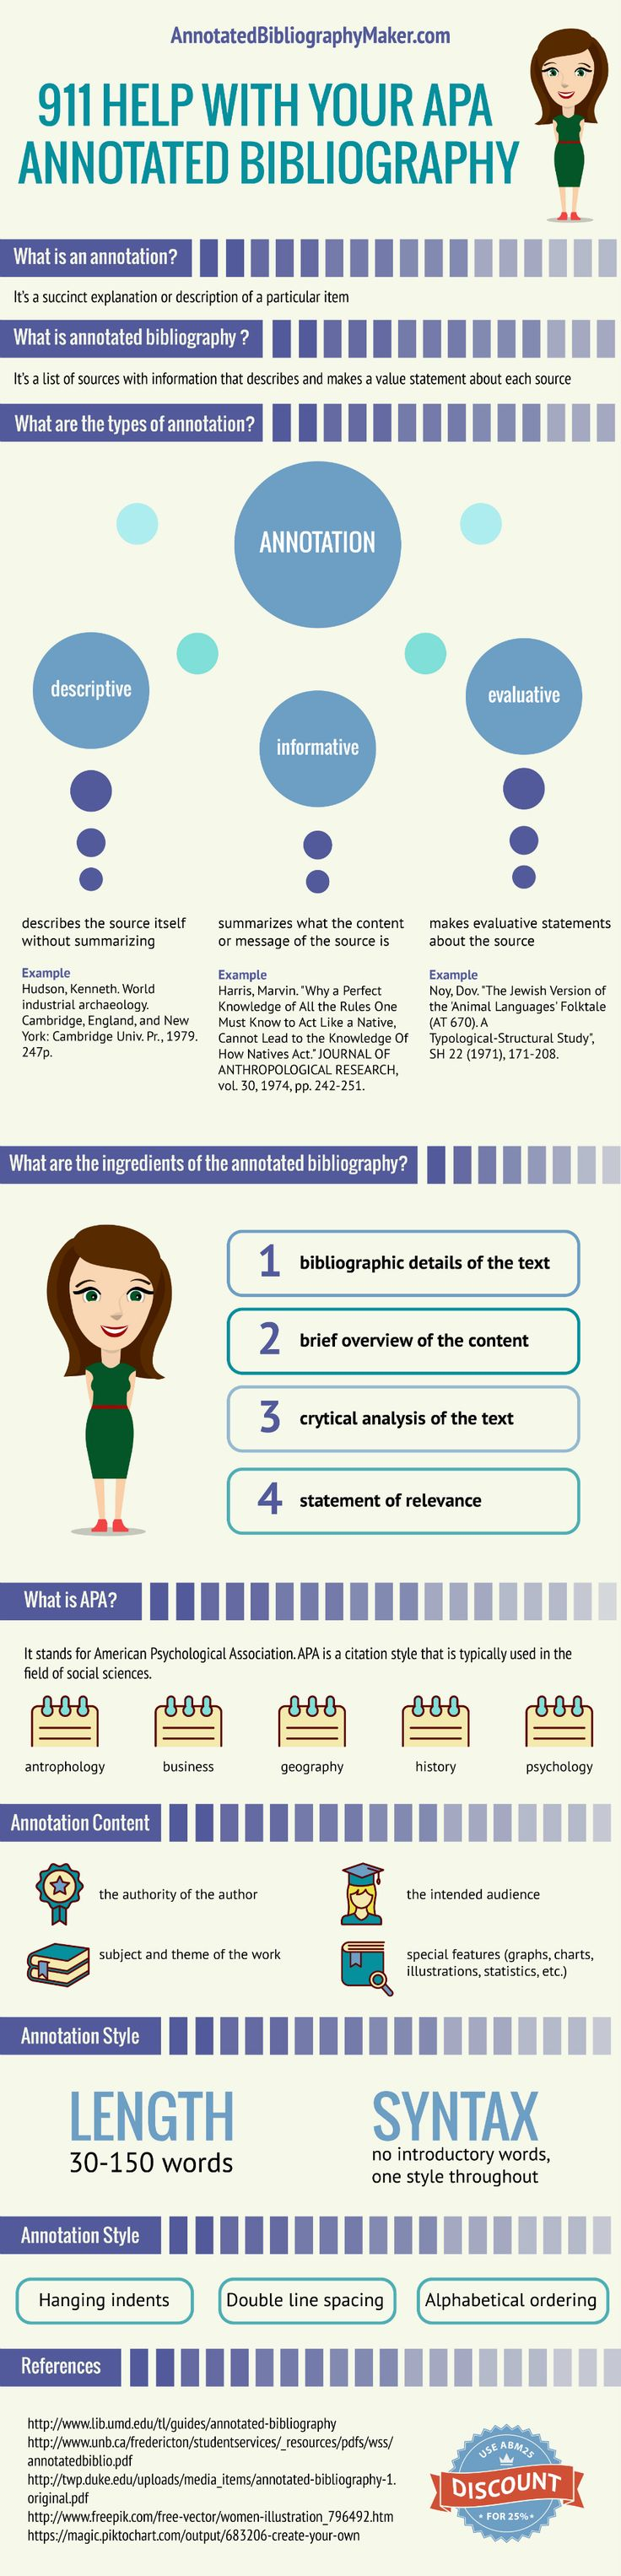 tips for writing annotated bibliography